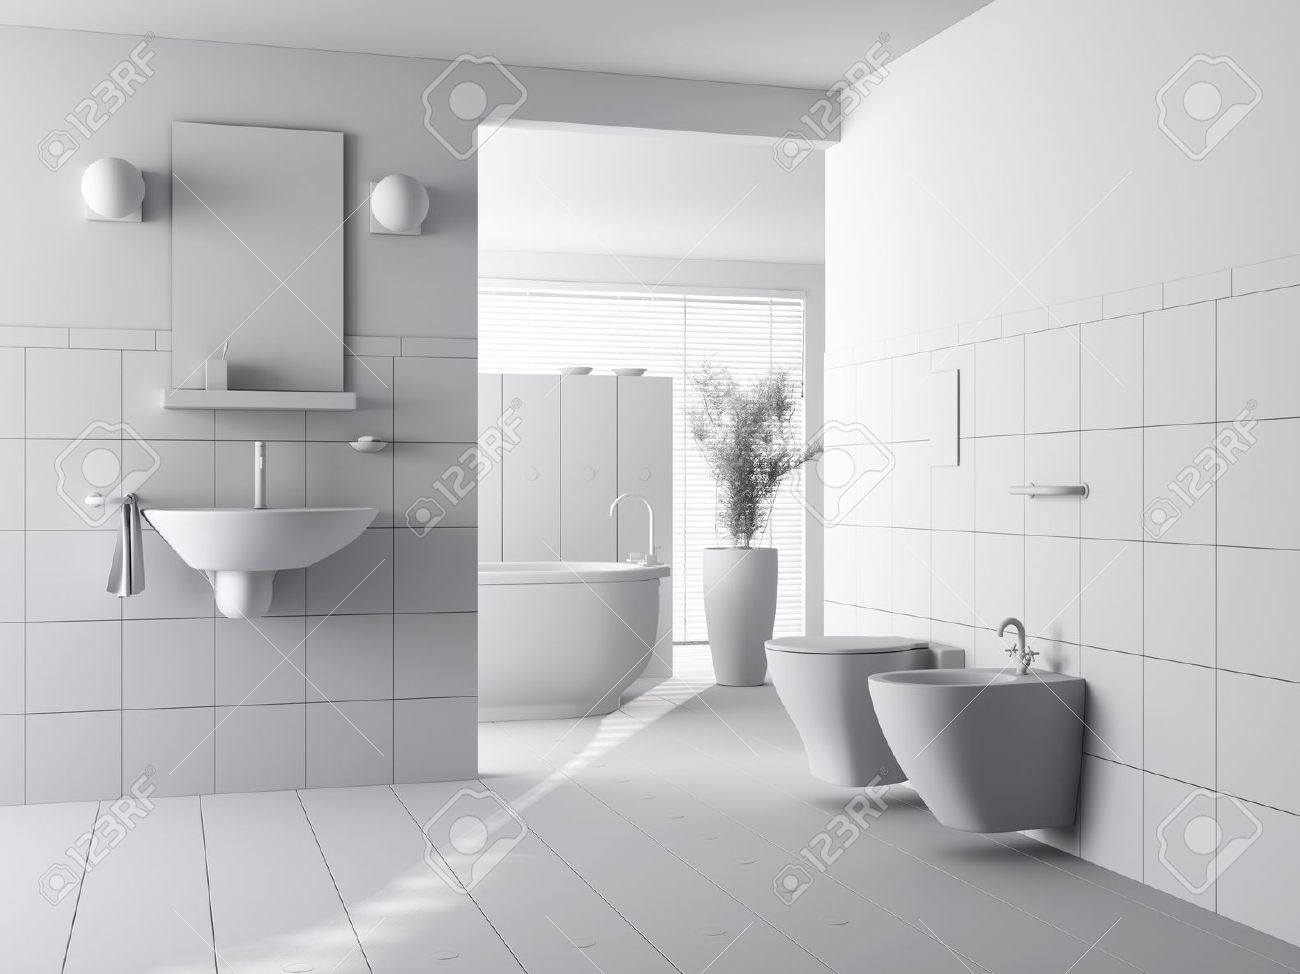 D clay render of a modern bathroom interior design stock photo